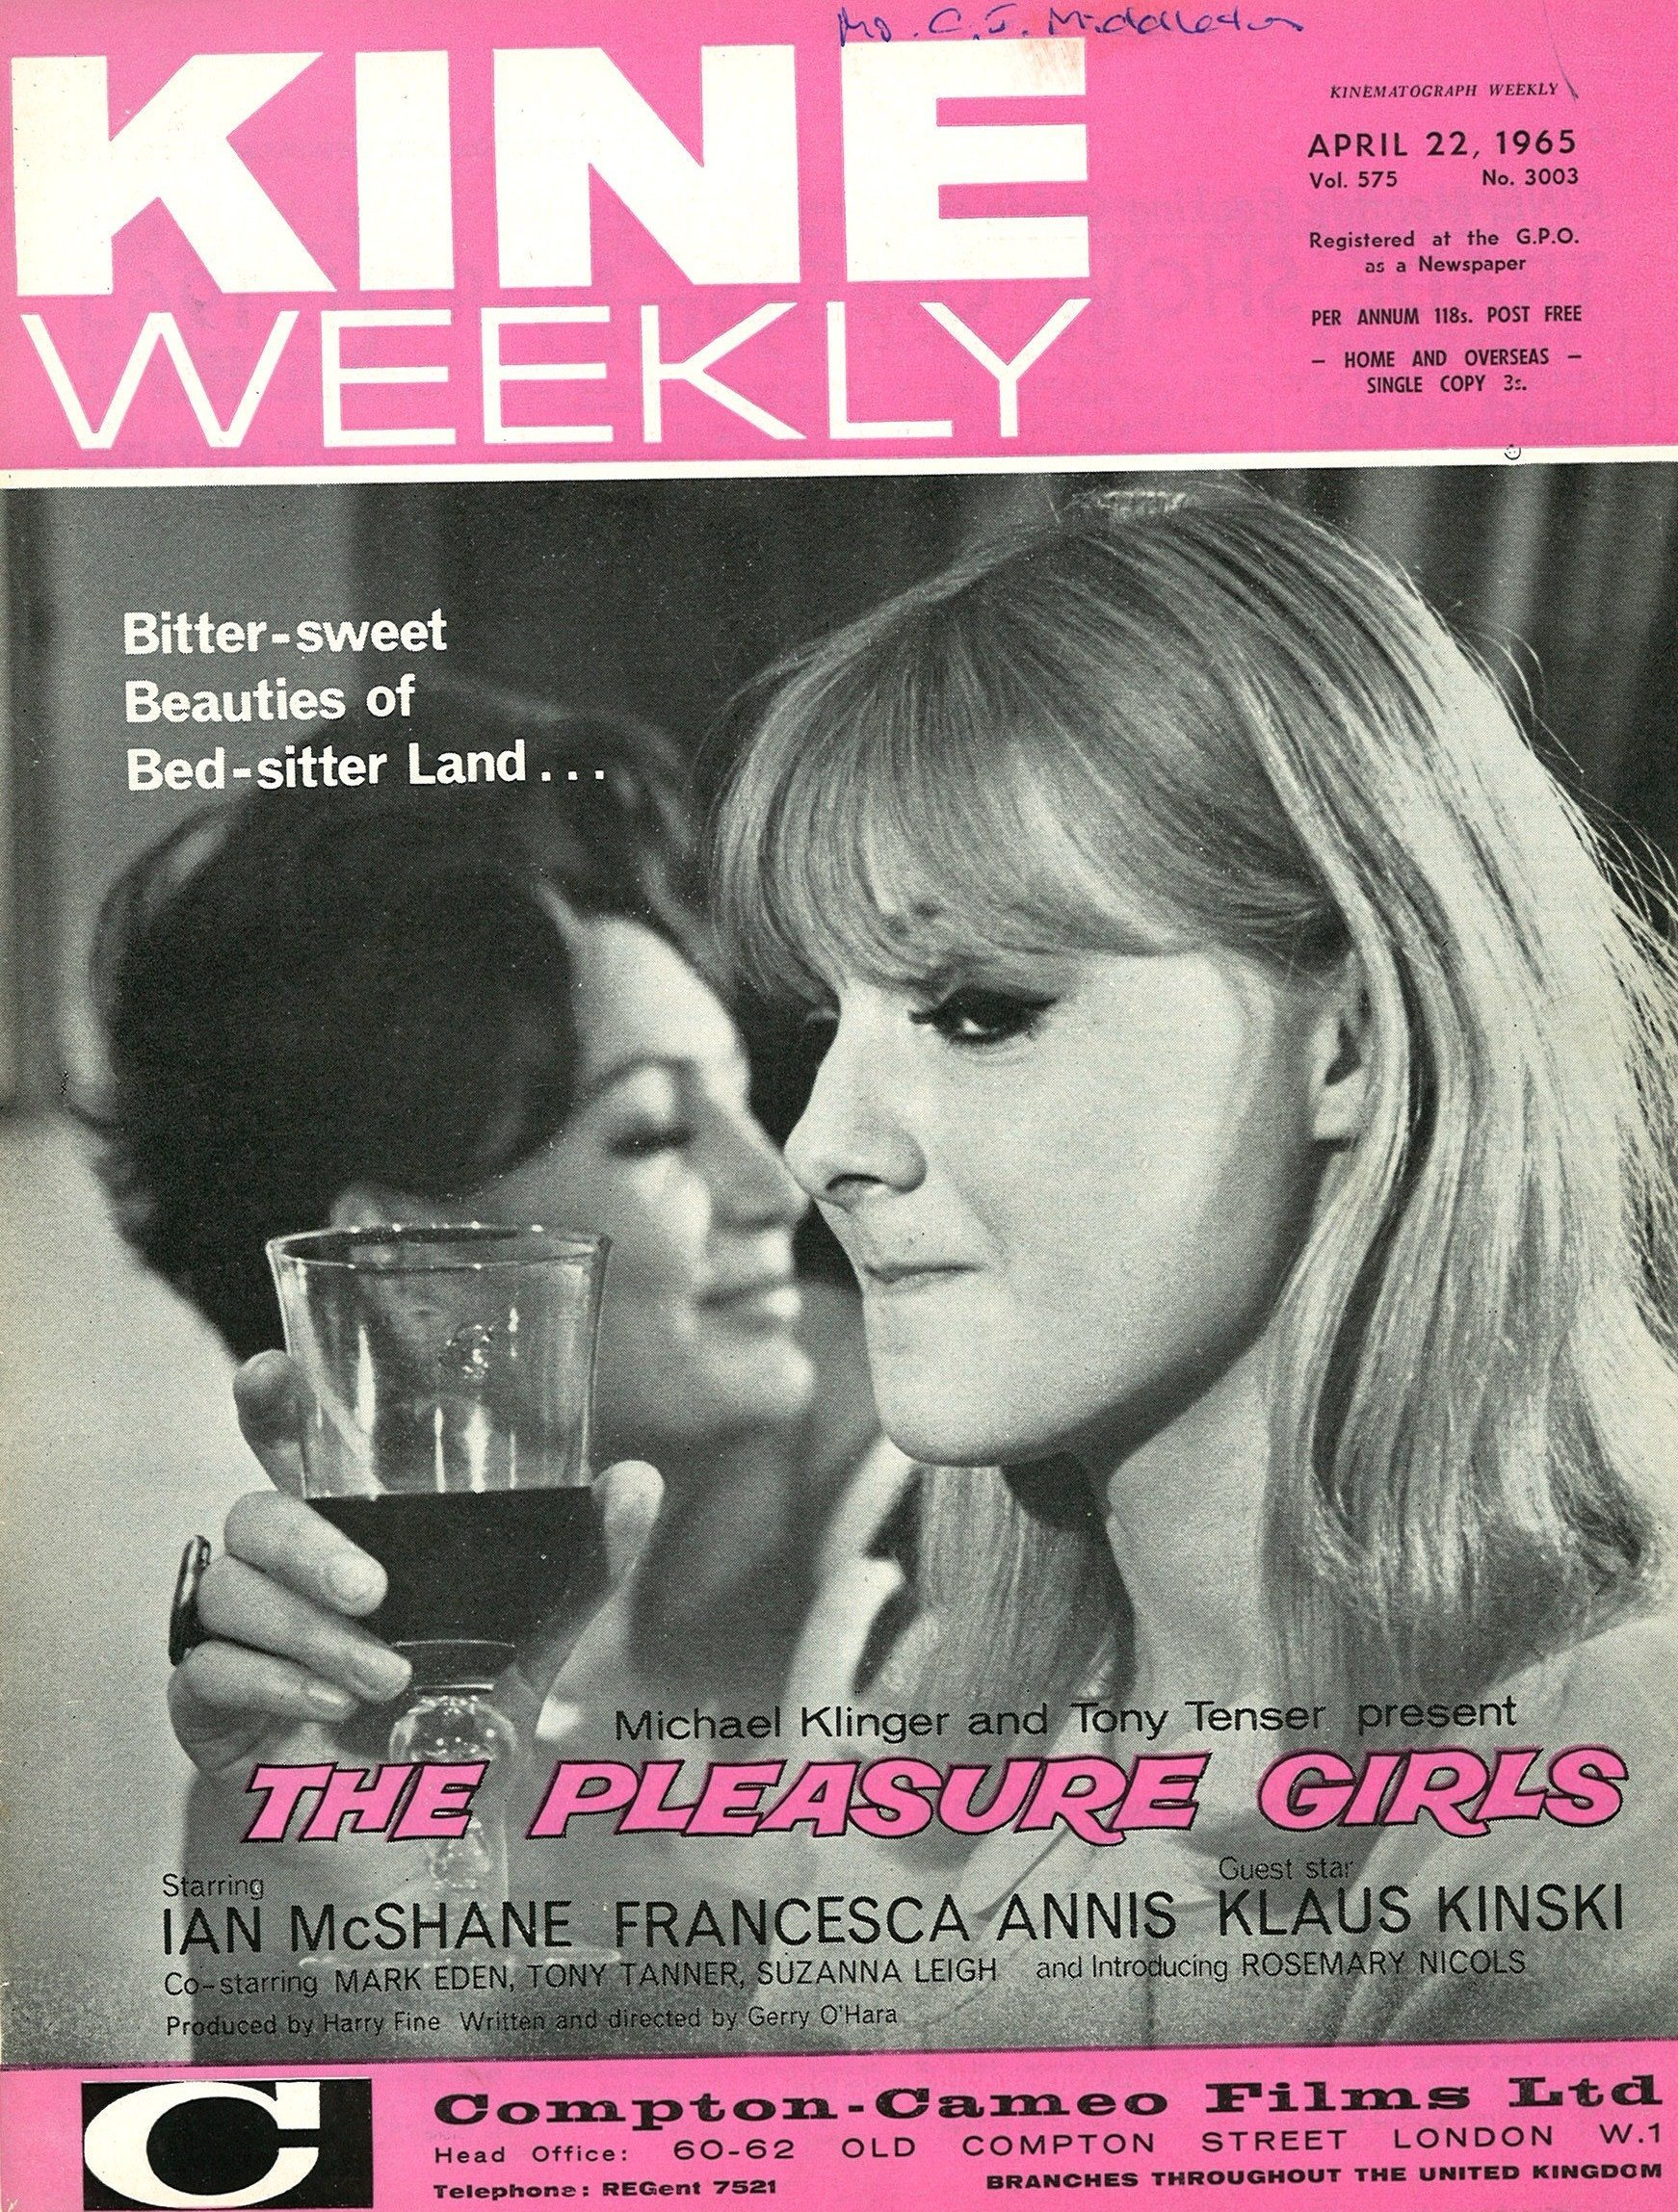 The Pleasure Girls 1965 magazine cover